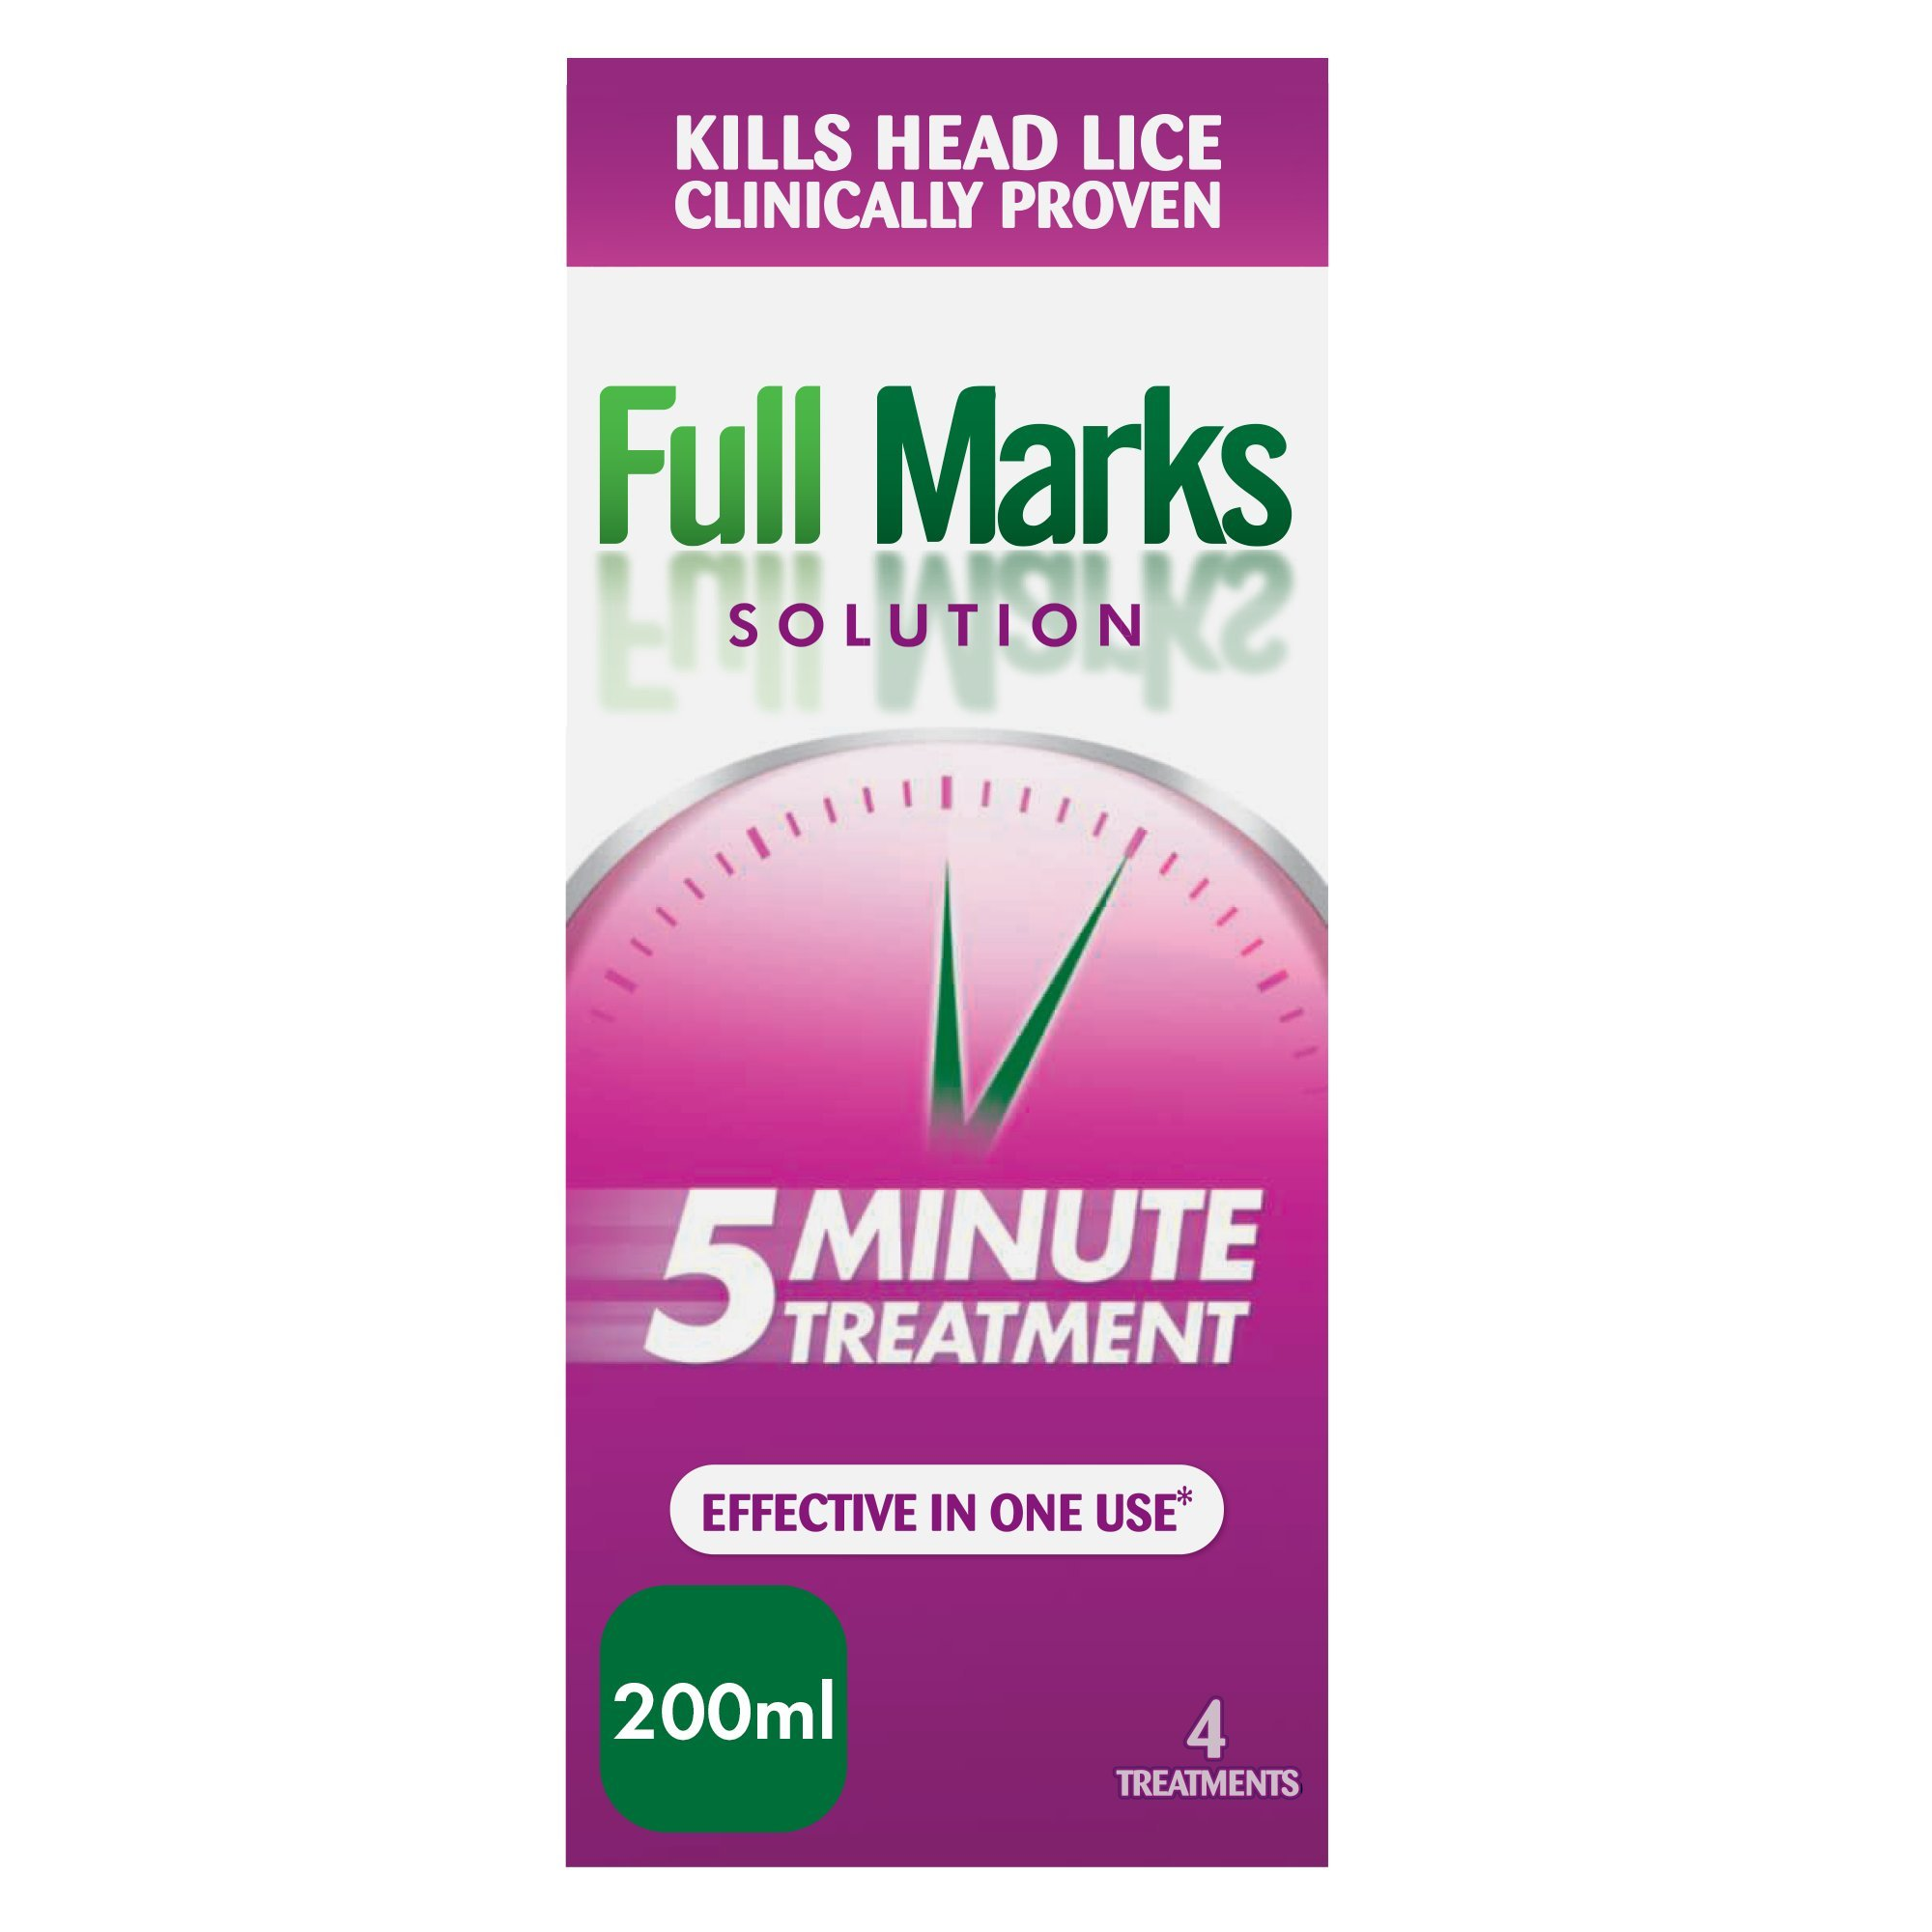 Full Marks Head Lice Solution With Comb - 4 Treatments, 200ml